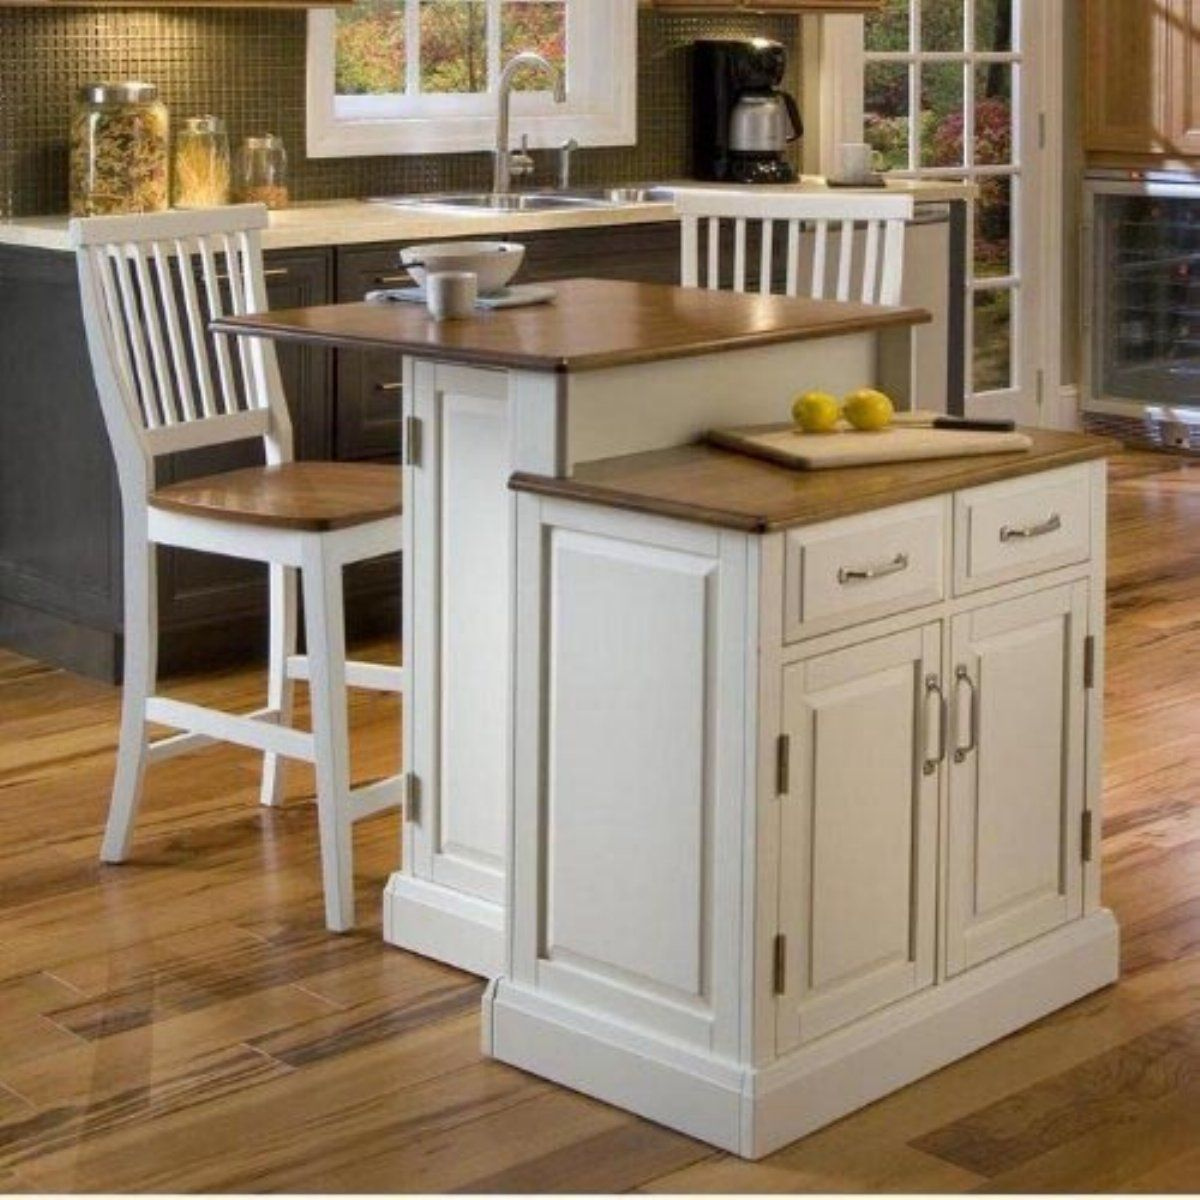 kitchen small kitchen islands for small kitchens small kitchen kitchen small kitchen islands for small kitchens small kitchen islands with breakfast bar and